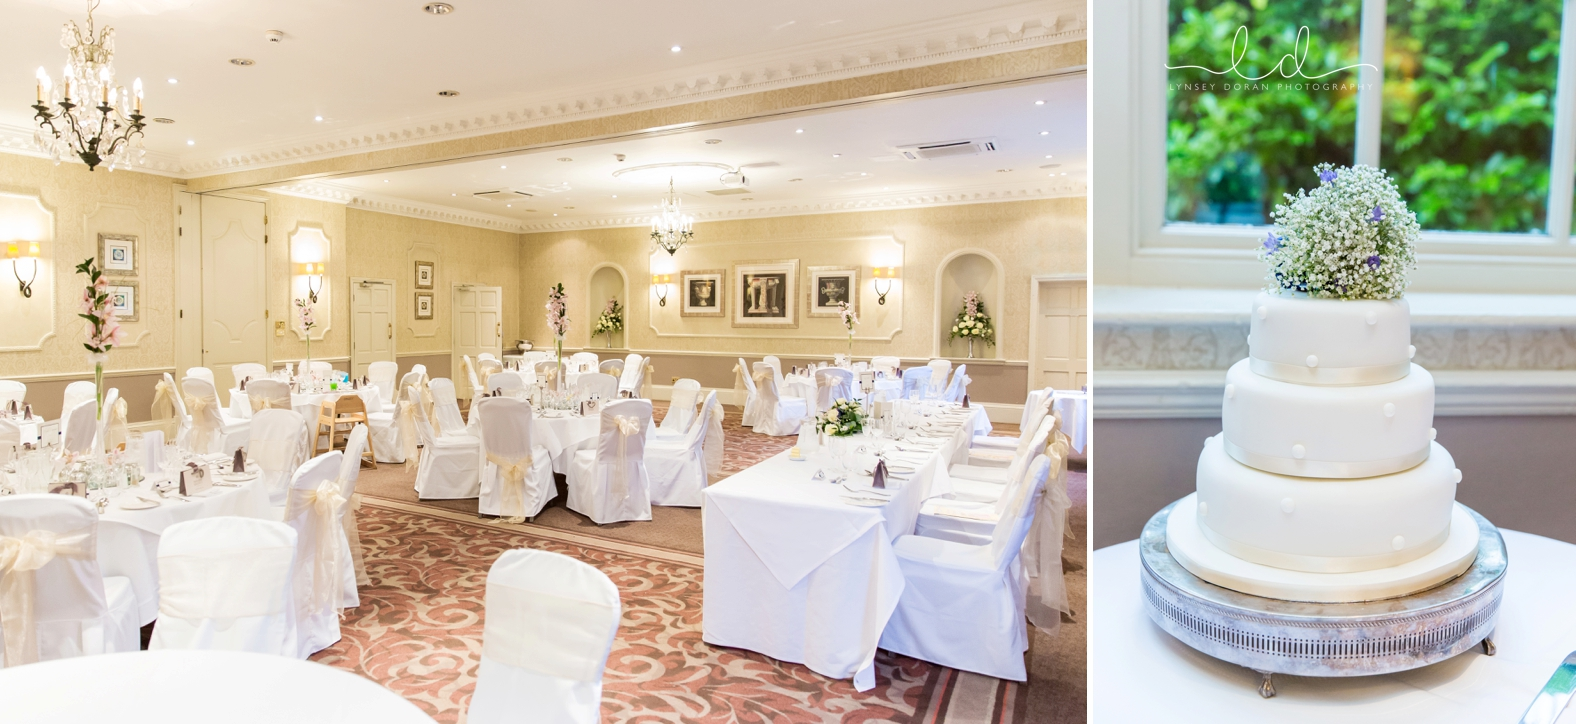 Wedding reception at wood hall hotel and spa